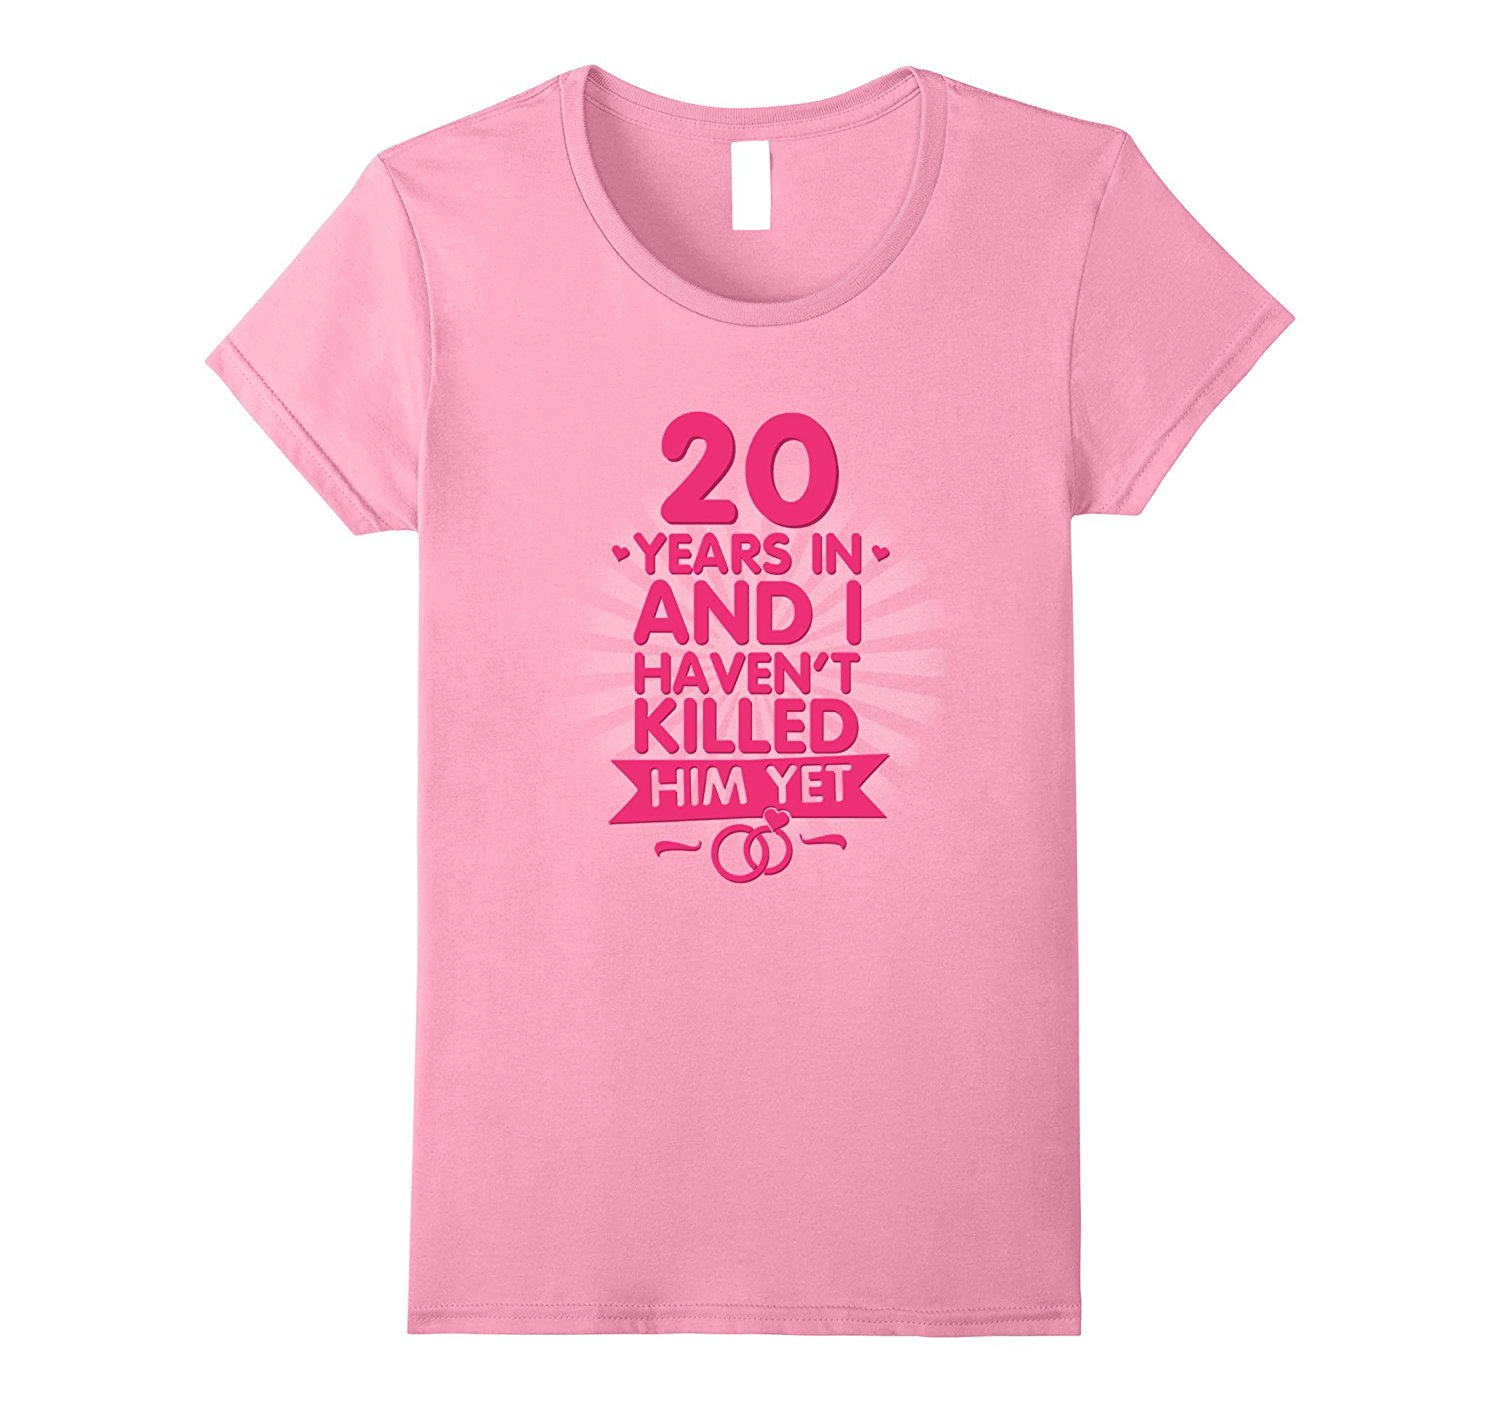 20 Year Wedding Anniversary Gift For Wife: 20 Years Of Marriage T Shirt. 20th Anniversary Gift For